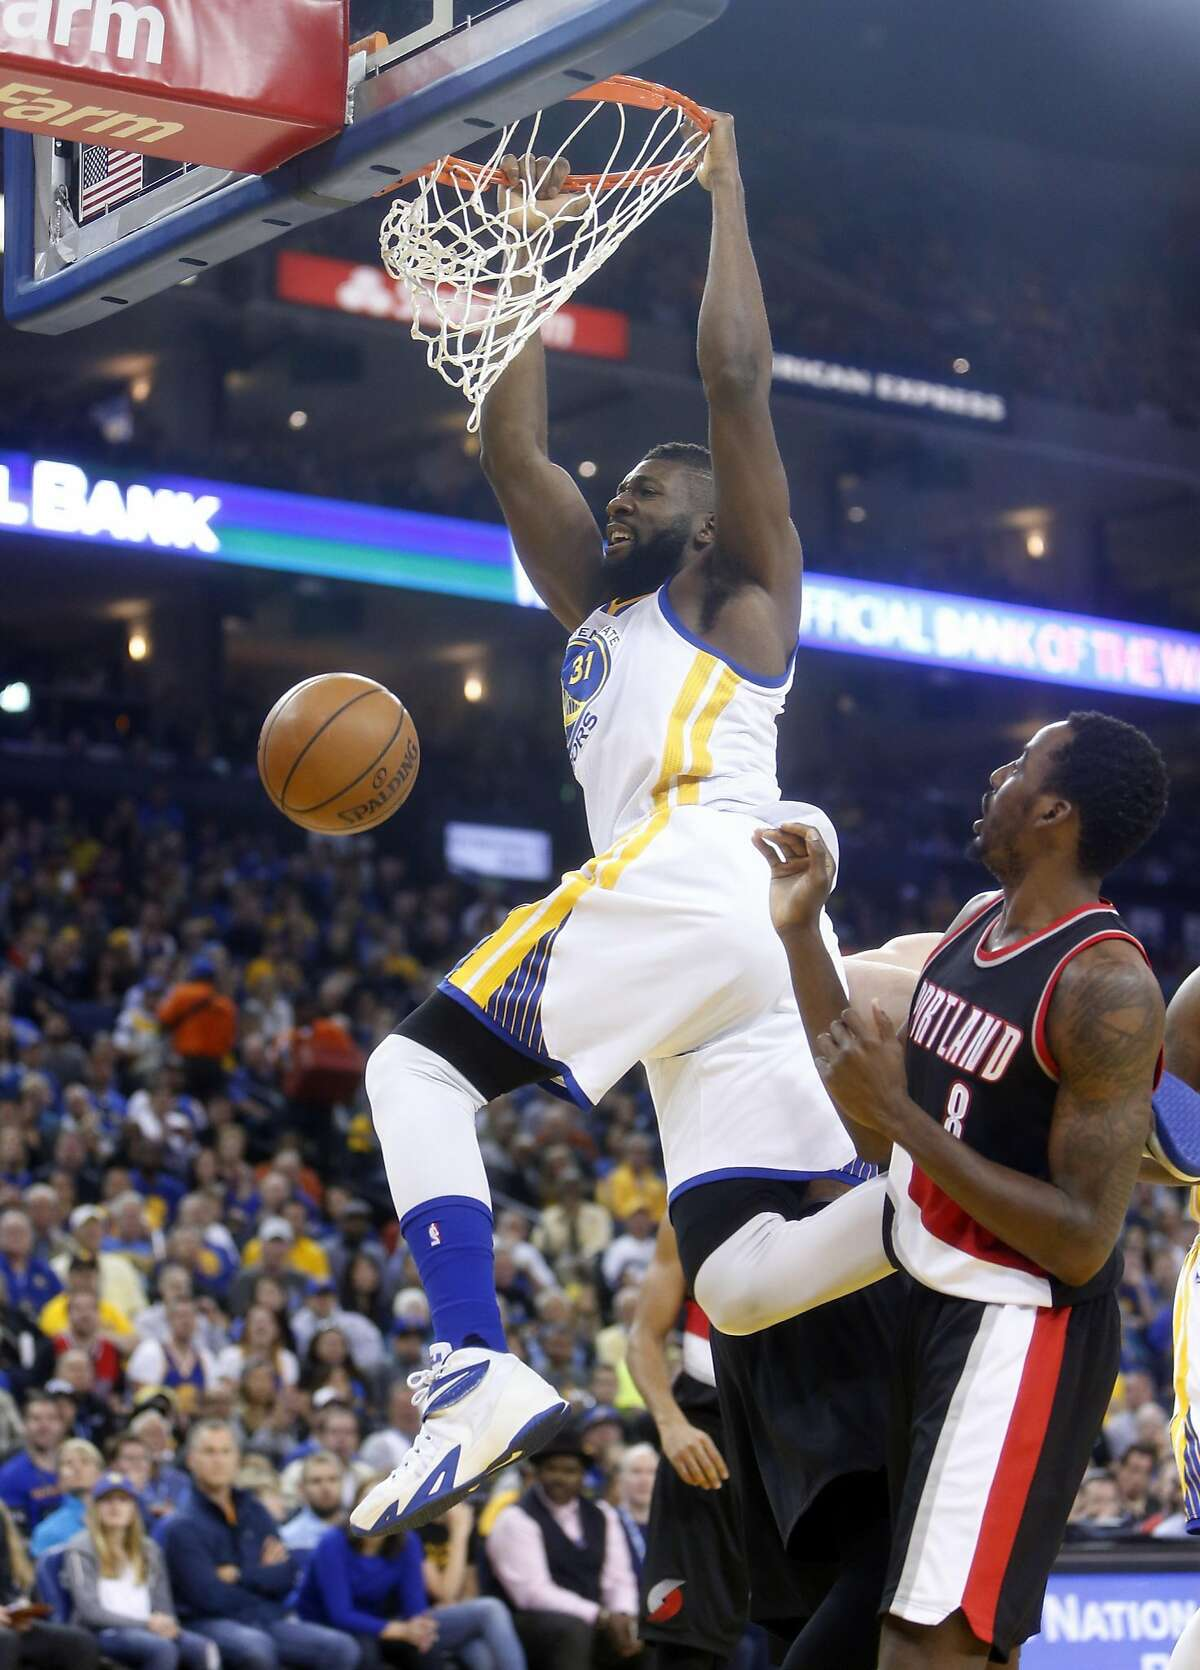 Golden State Warriors' Festus Ezeli dunks against Portland Trail Blazers' Al-Farouq Aminu in 1st quarter in NBA game at Oracle Arena in Oakland, Calif., on Sunday, April 3, 2016.